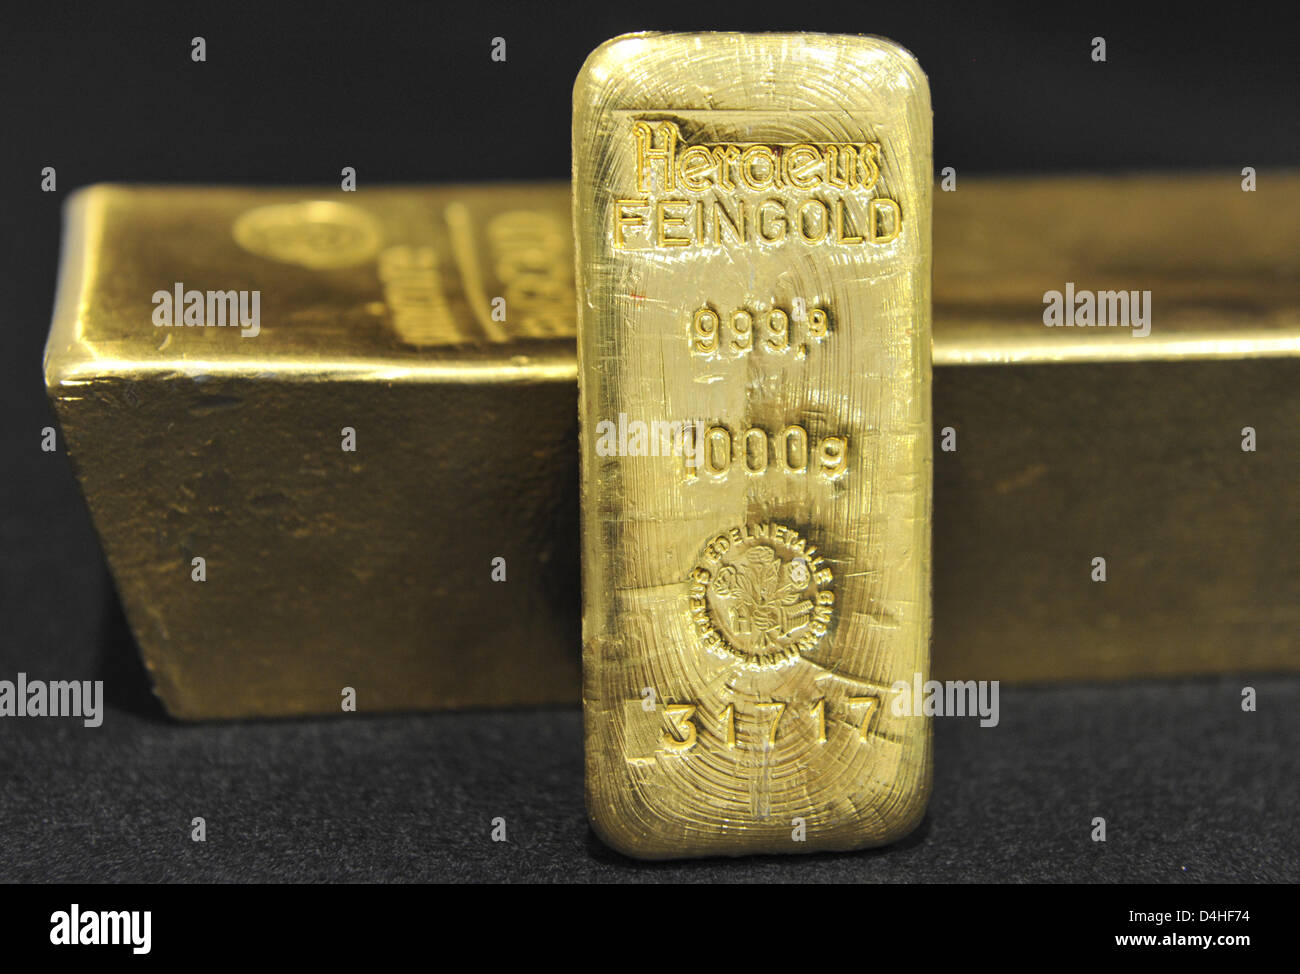 A small bullion weighing 500 grammes is leant against a large gold bar weighing 12 kilogrammes at a bullion dealer - Stock Image